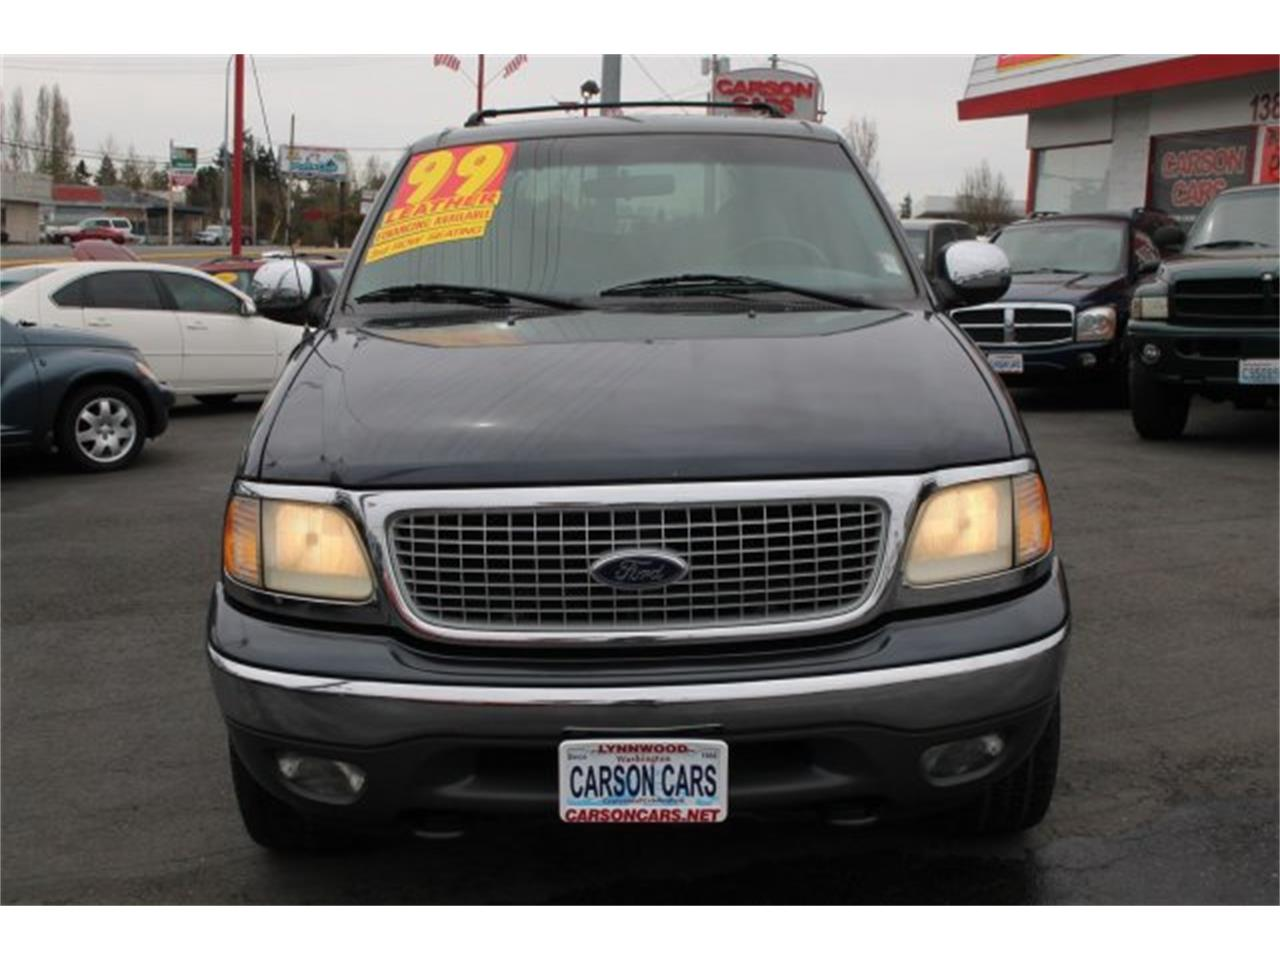 Large picture of 99 ford expedition 5995 00 ku11